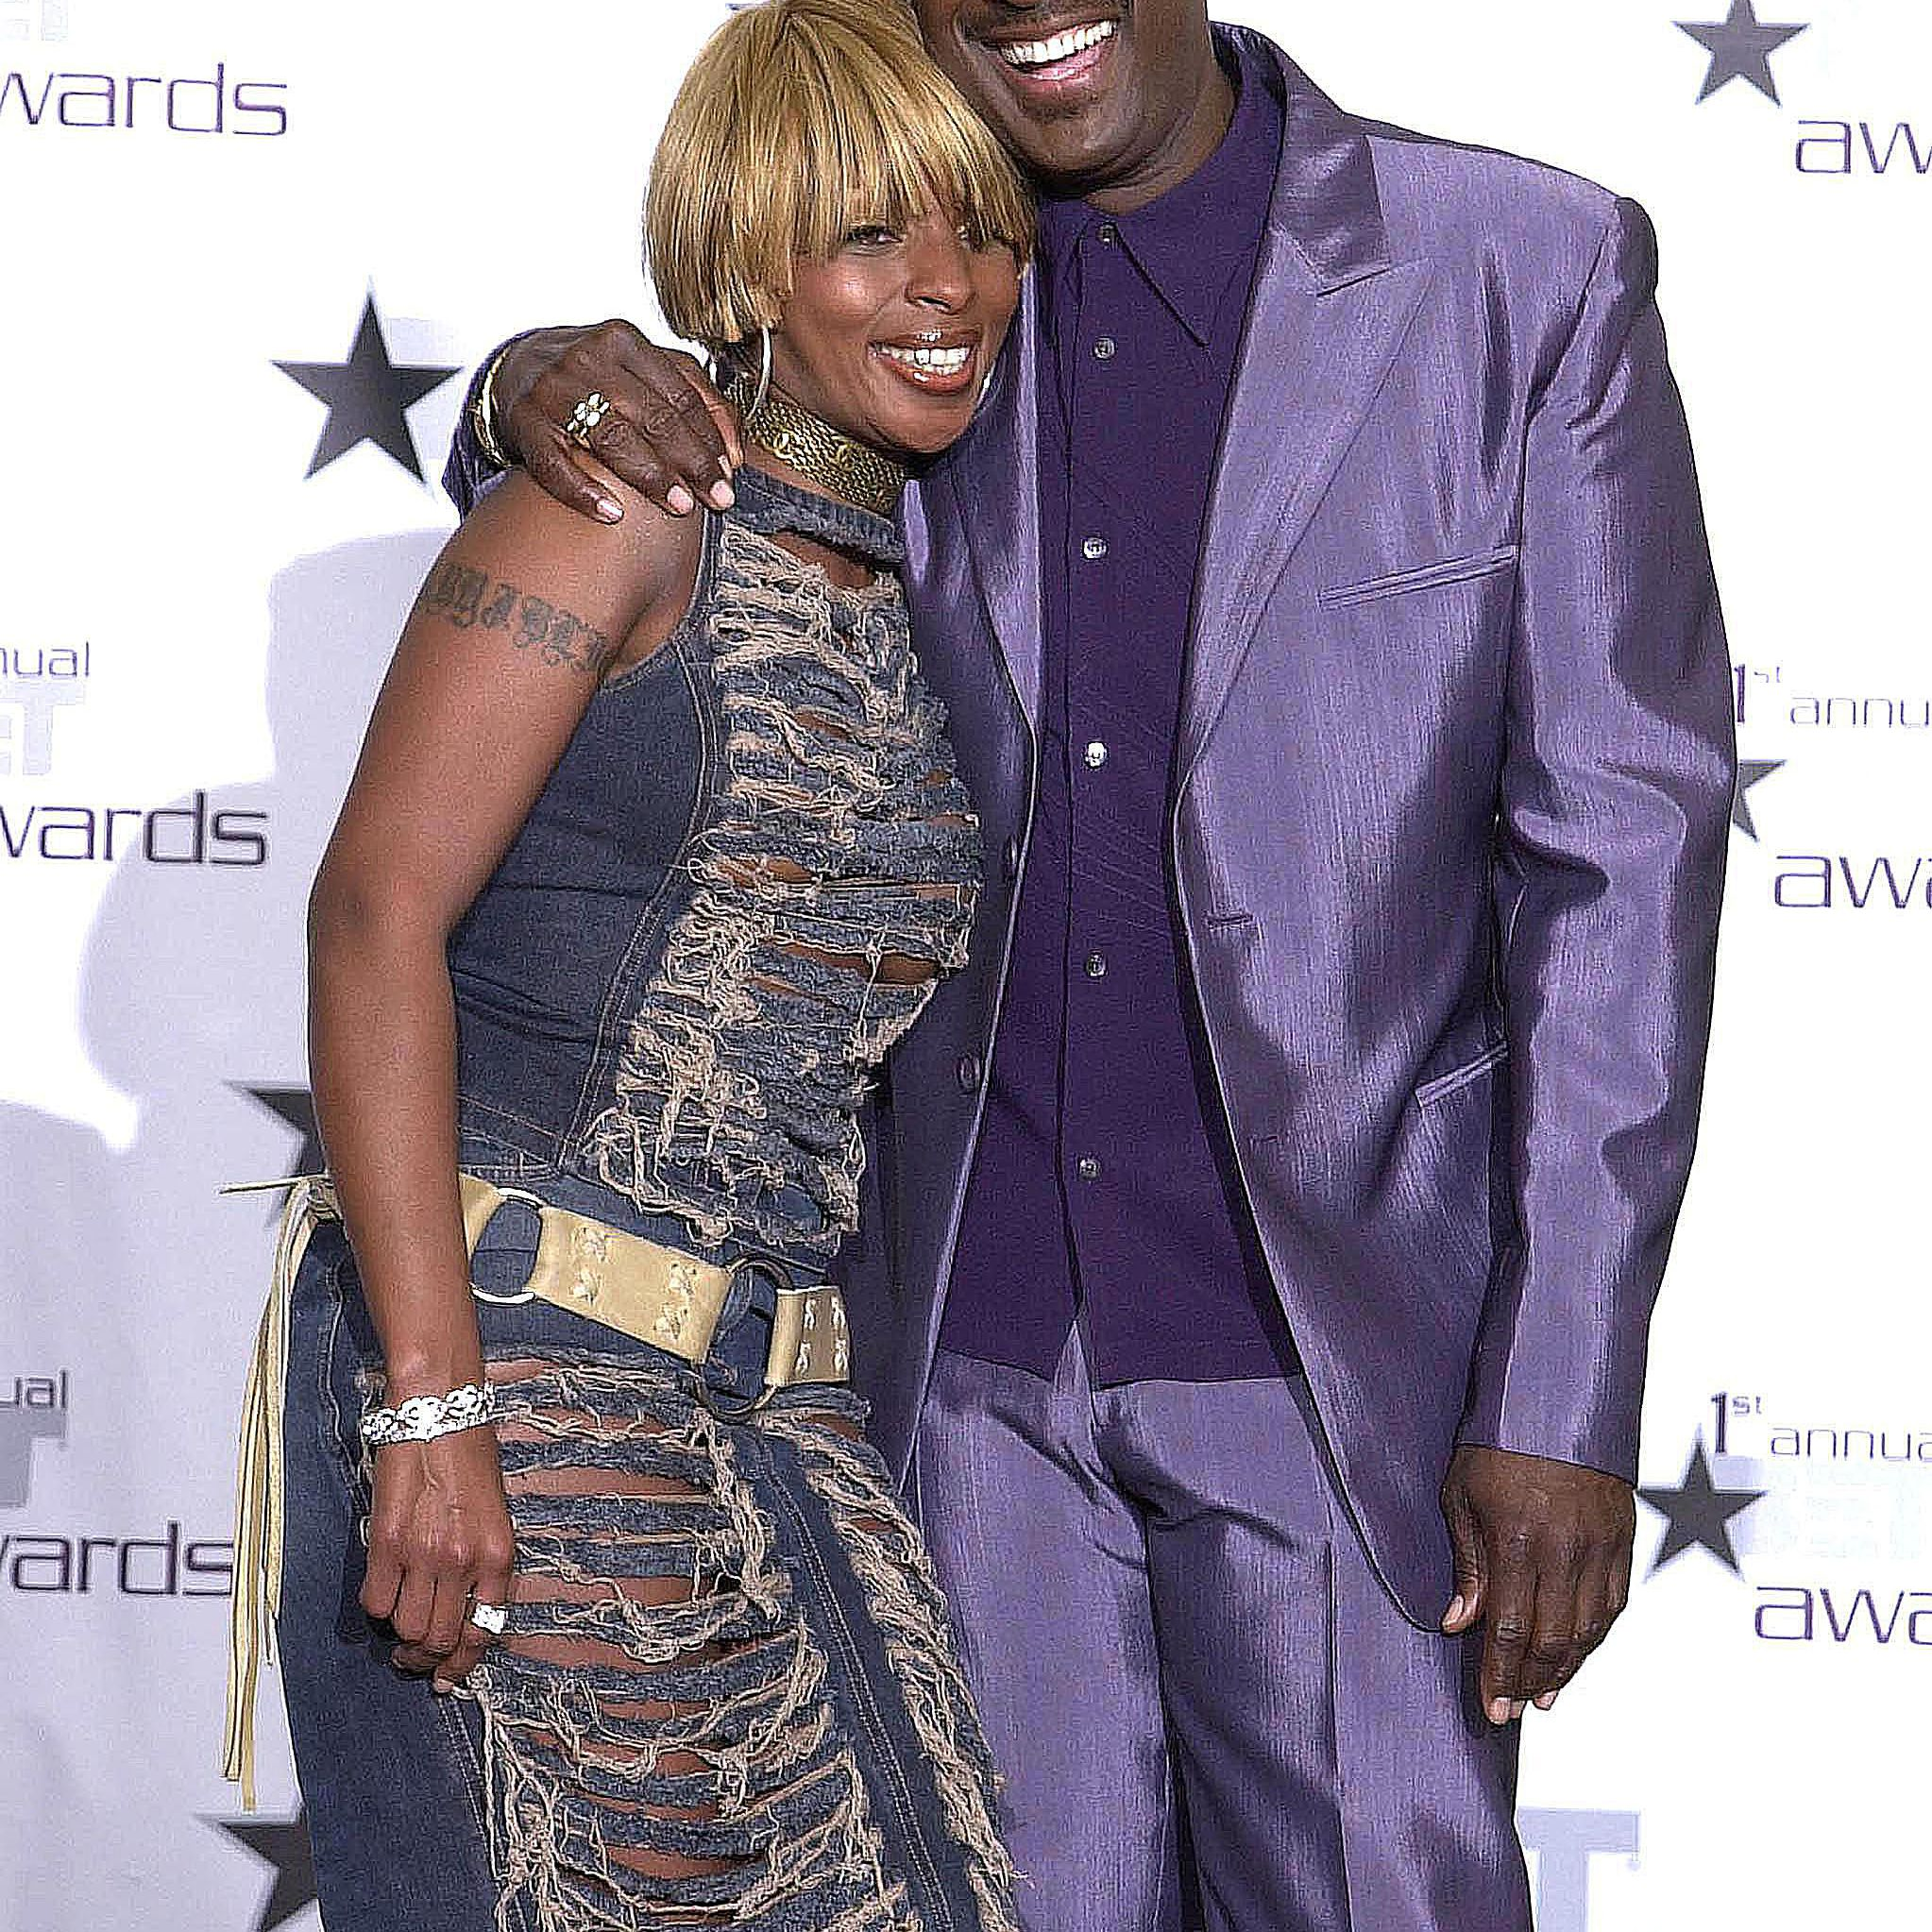 Mary J. Blige and Luther Vandross